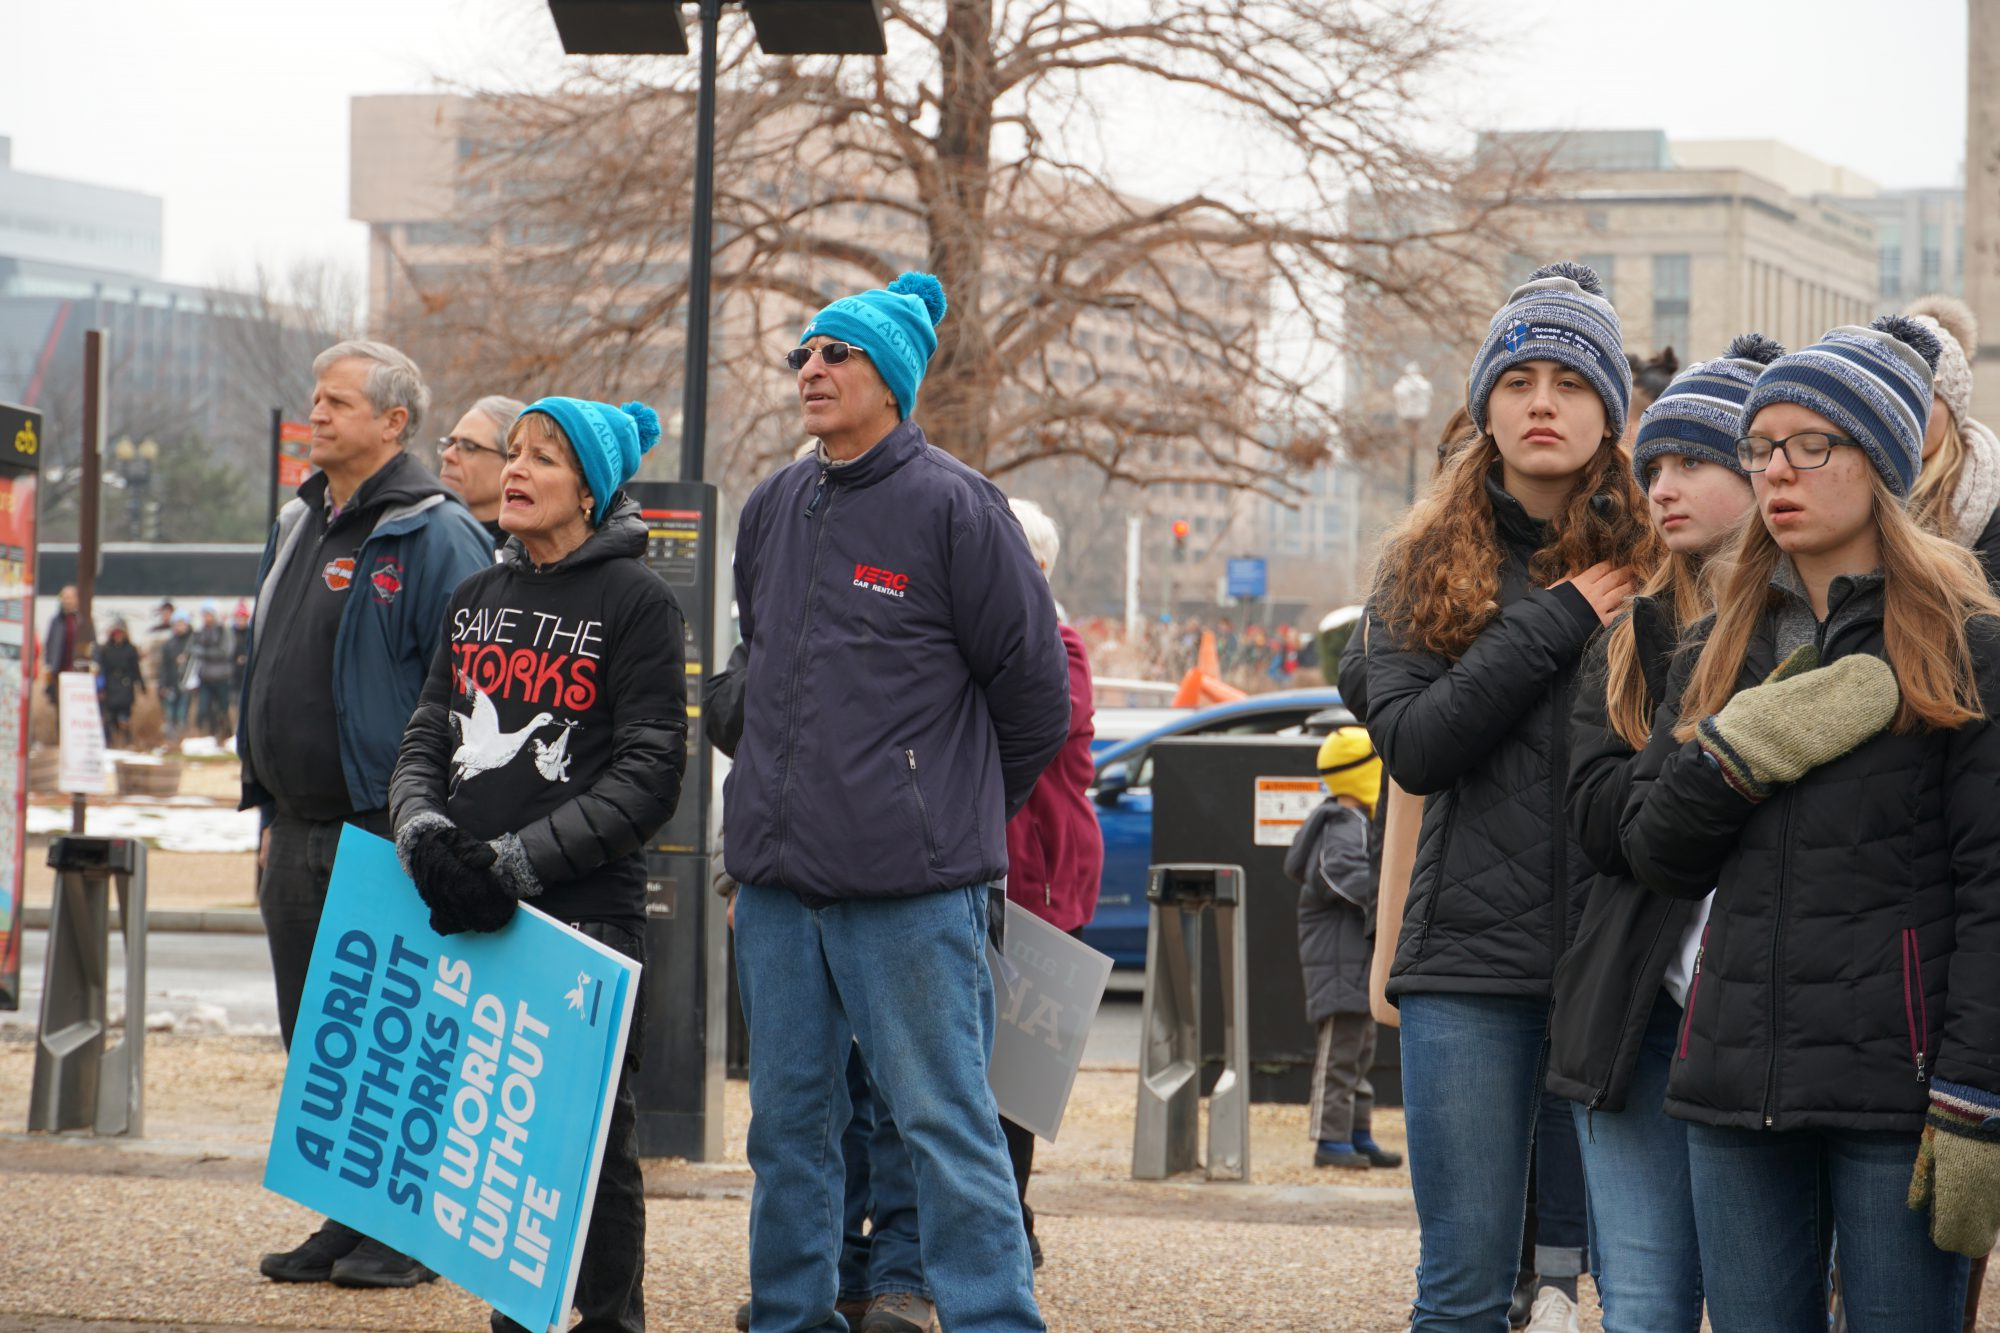 People said the Pledge of Allegiance and sang the National Anthem at the rally before the March for Life. (Ester Wells/MNS)